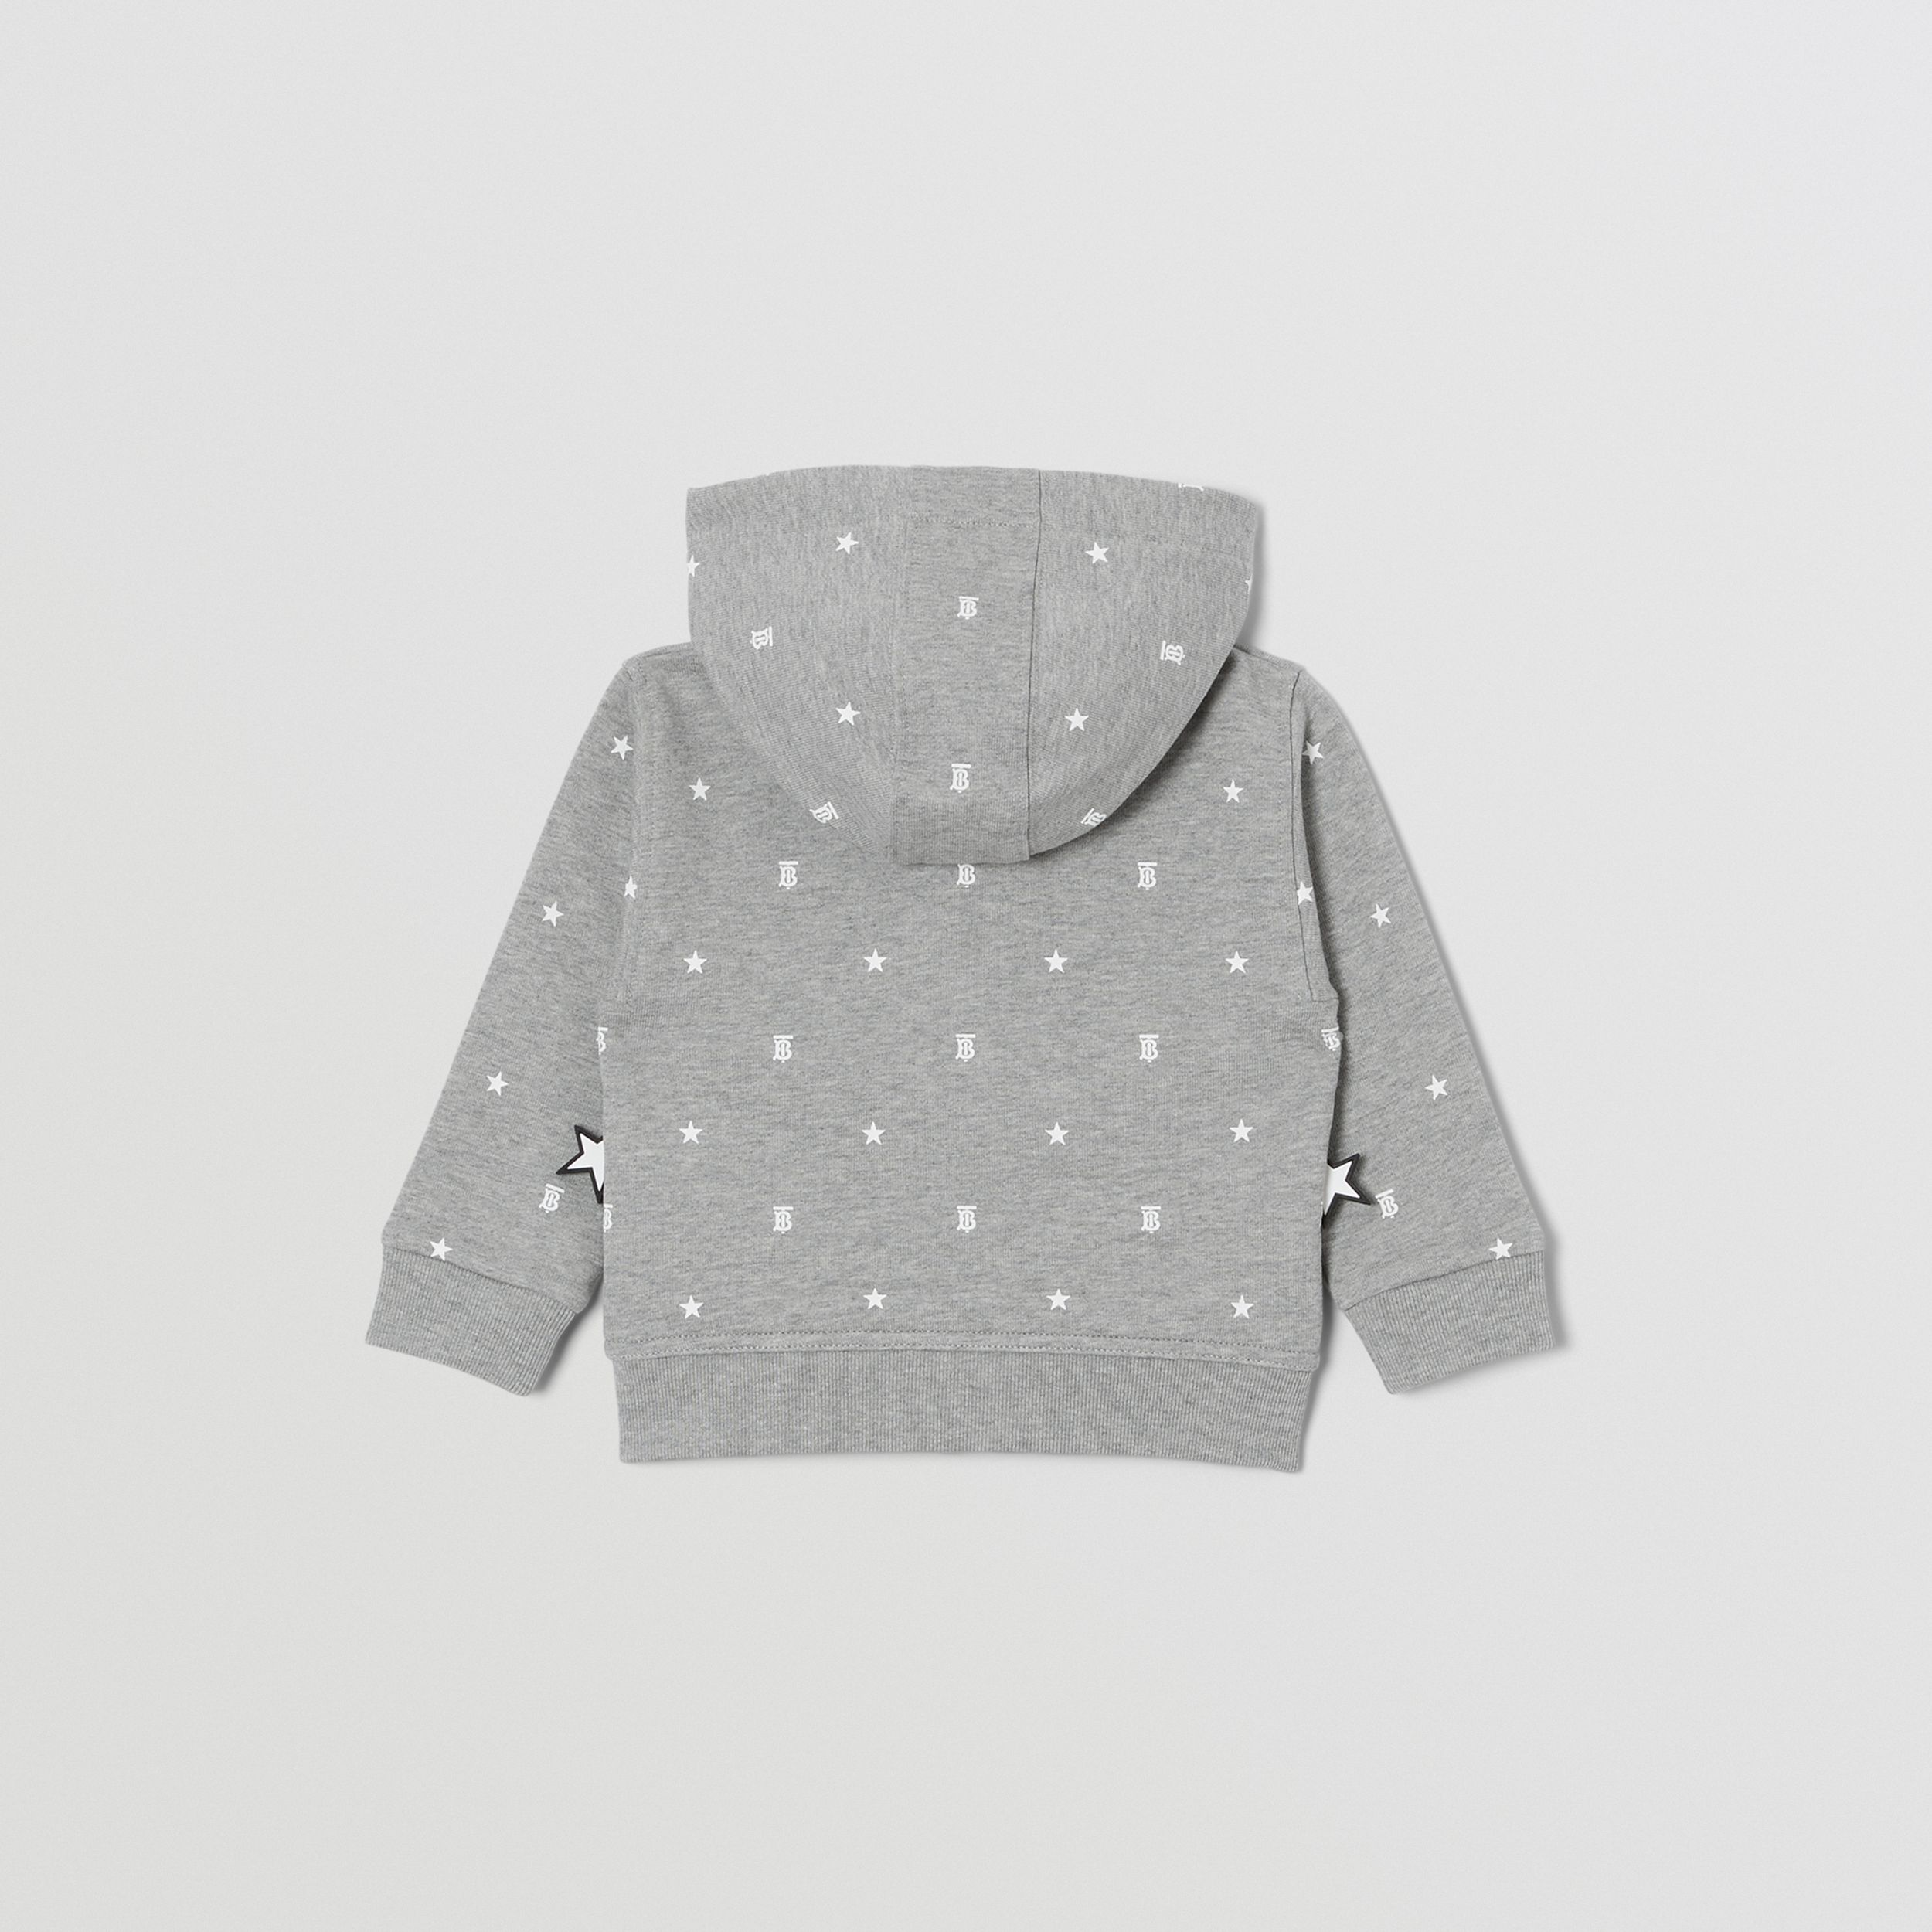 Star and Monogram Print Cotton Hooded Top in Grey - Children | Burberry - 4